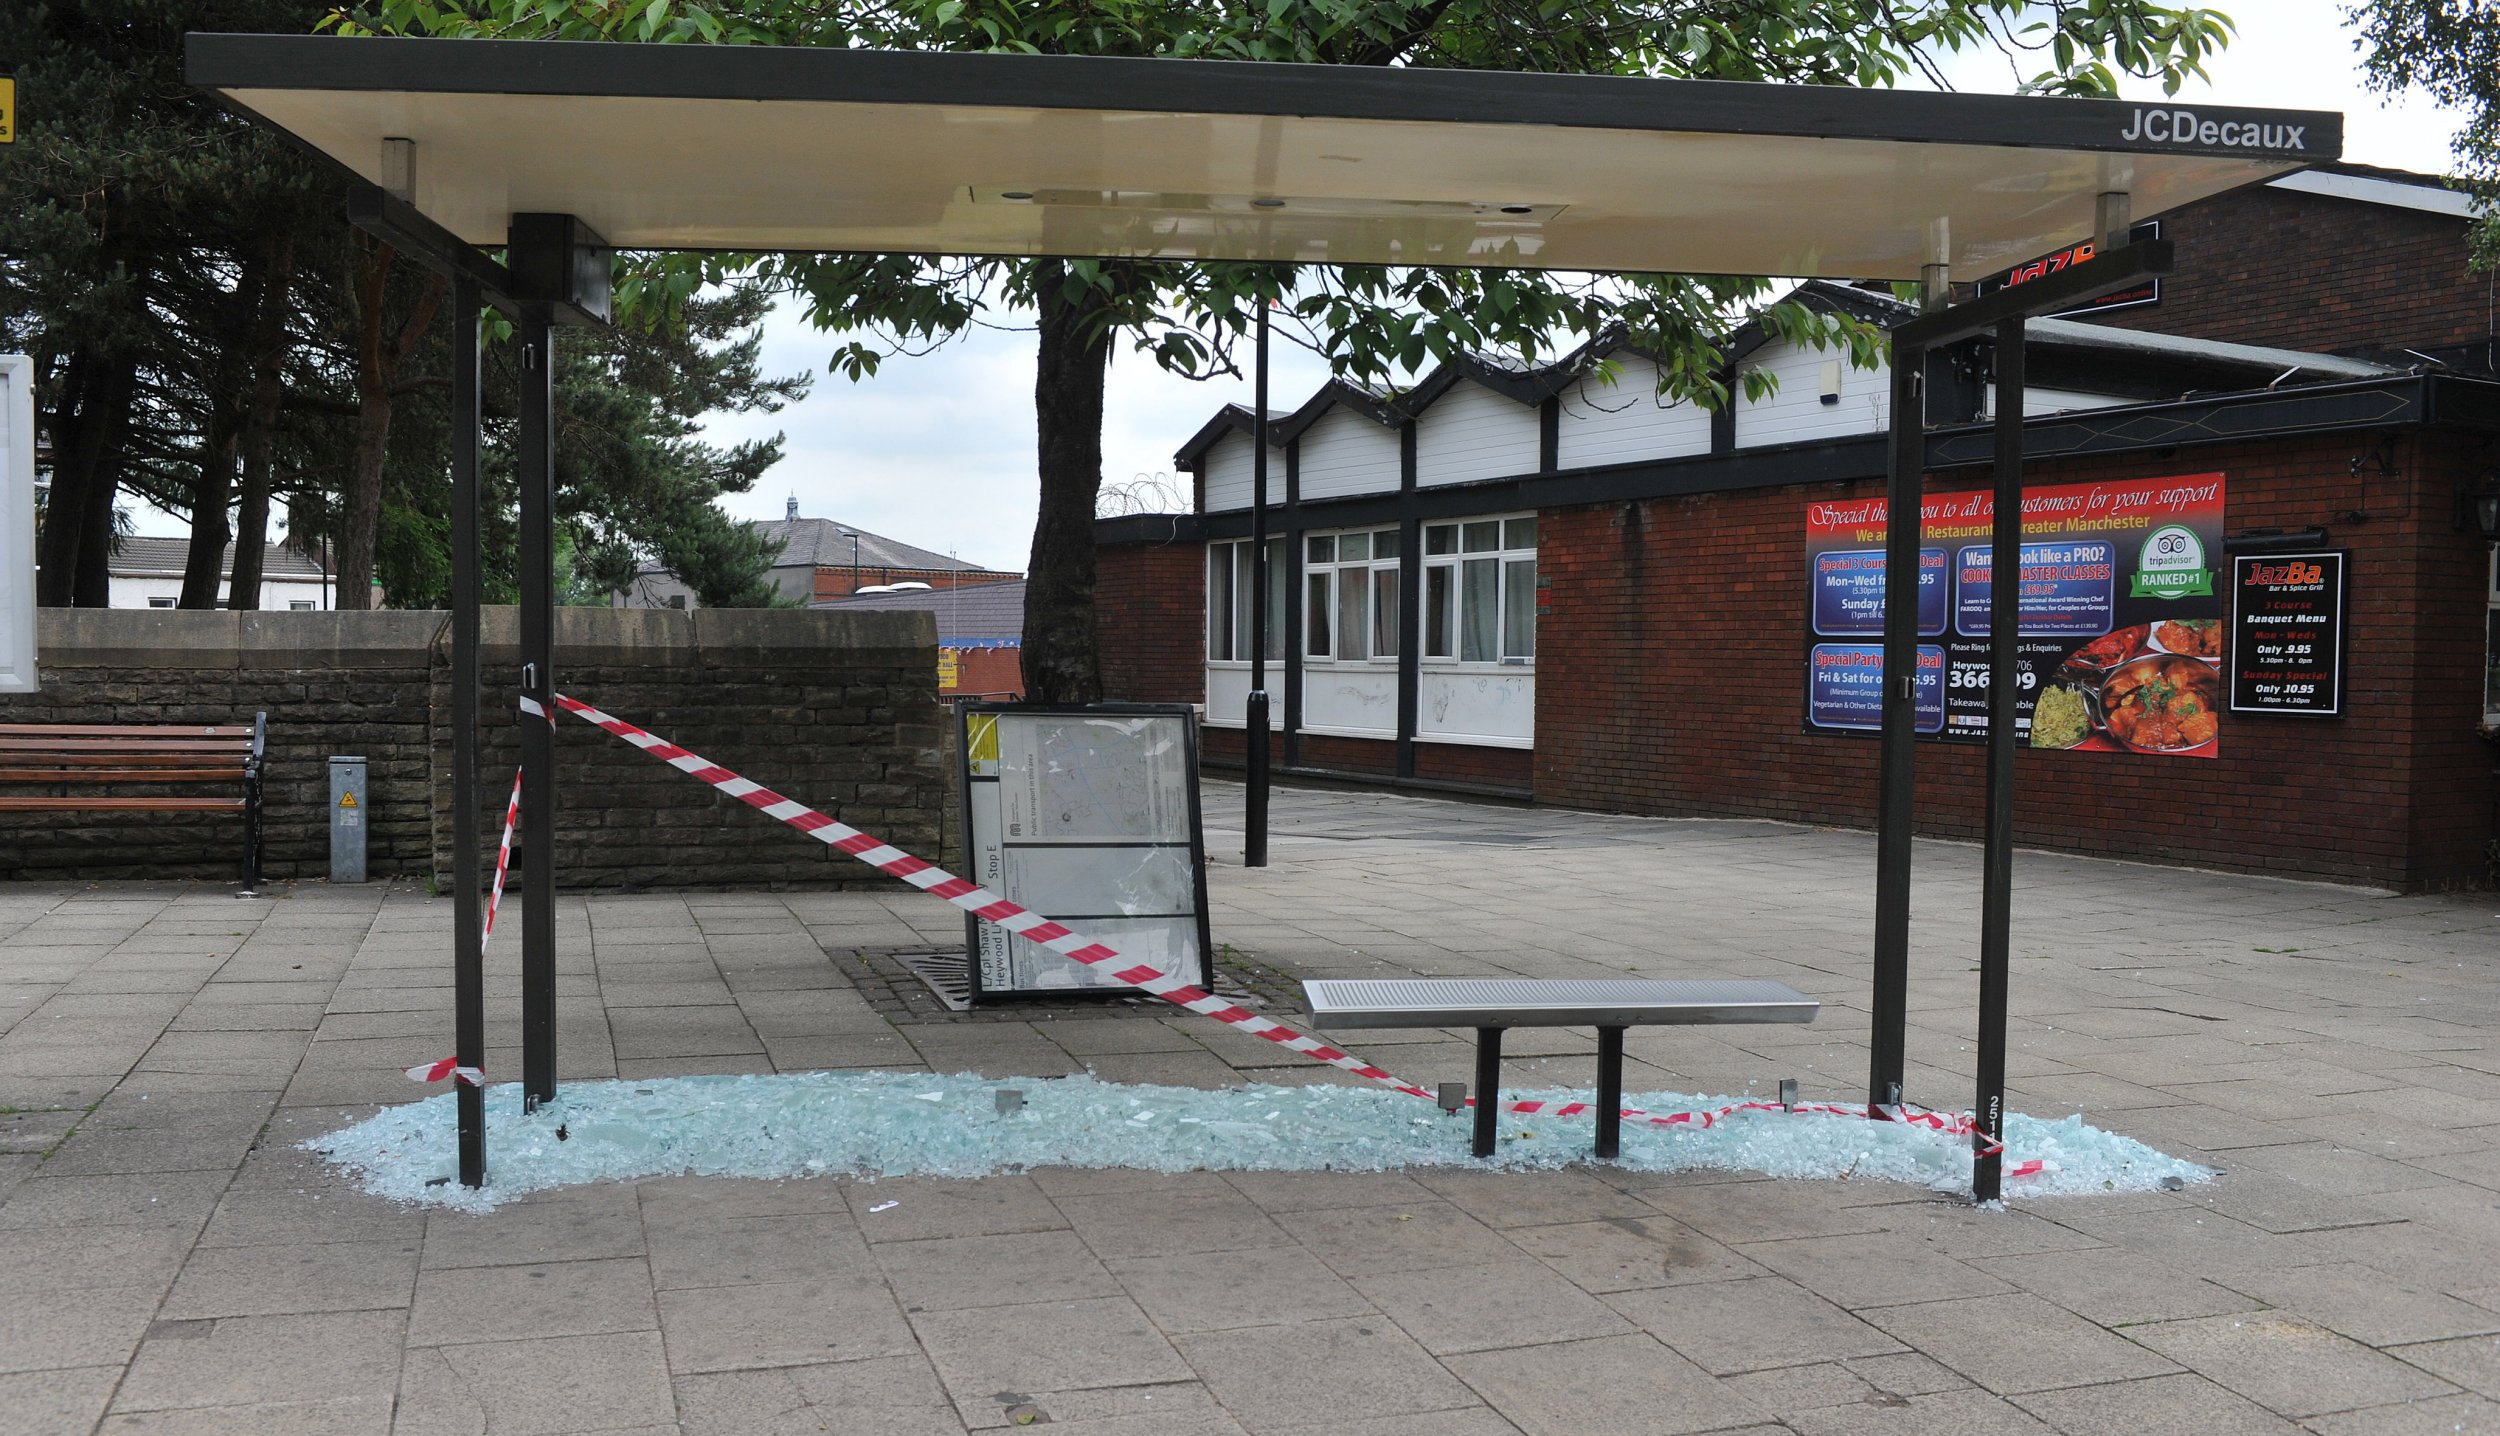 'Moronic' vandals rampaged through a town centre and smashed up a string of bus stops. The glass panels in five bus stops along Church Street and Market Street in Heywood, were shattered overnight on Tuesday. caption: The bus stop on Church Street in front of the Memorial Gardens